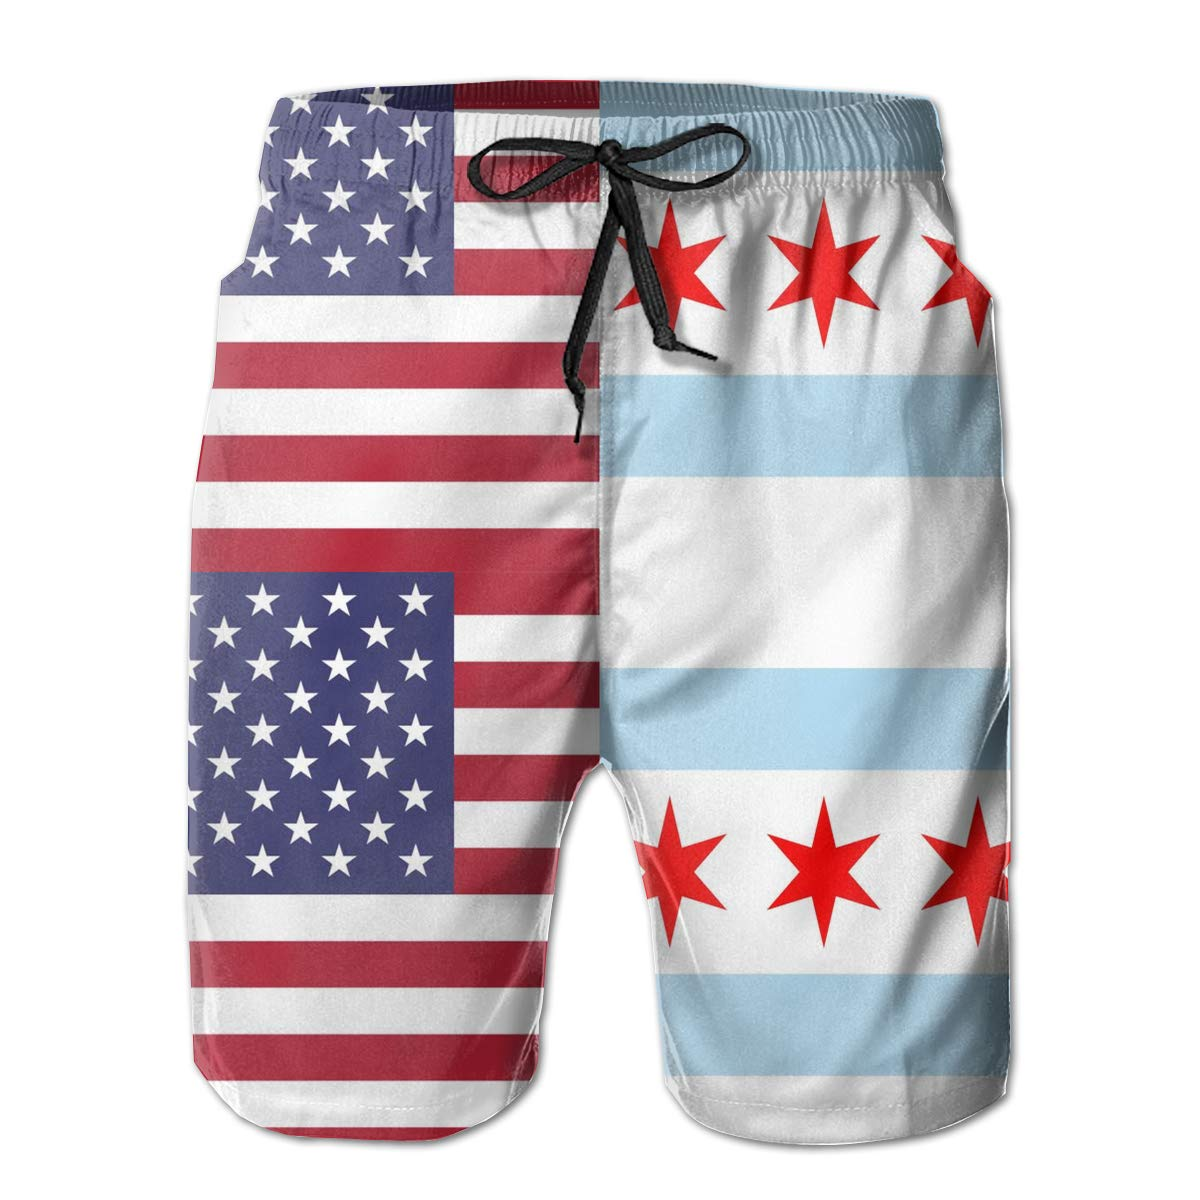 TBVS 79 Chicago American Half Flag Mens Summer Cool Surfing Boardshorts with Mesh Lining